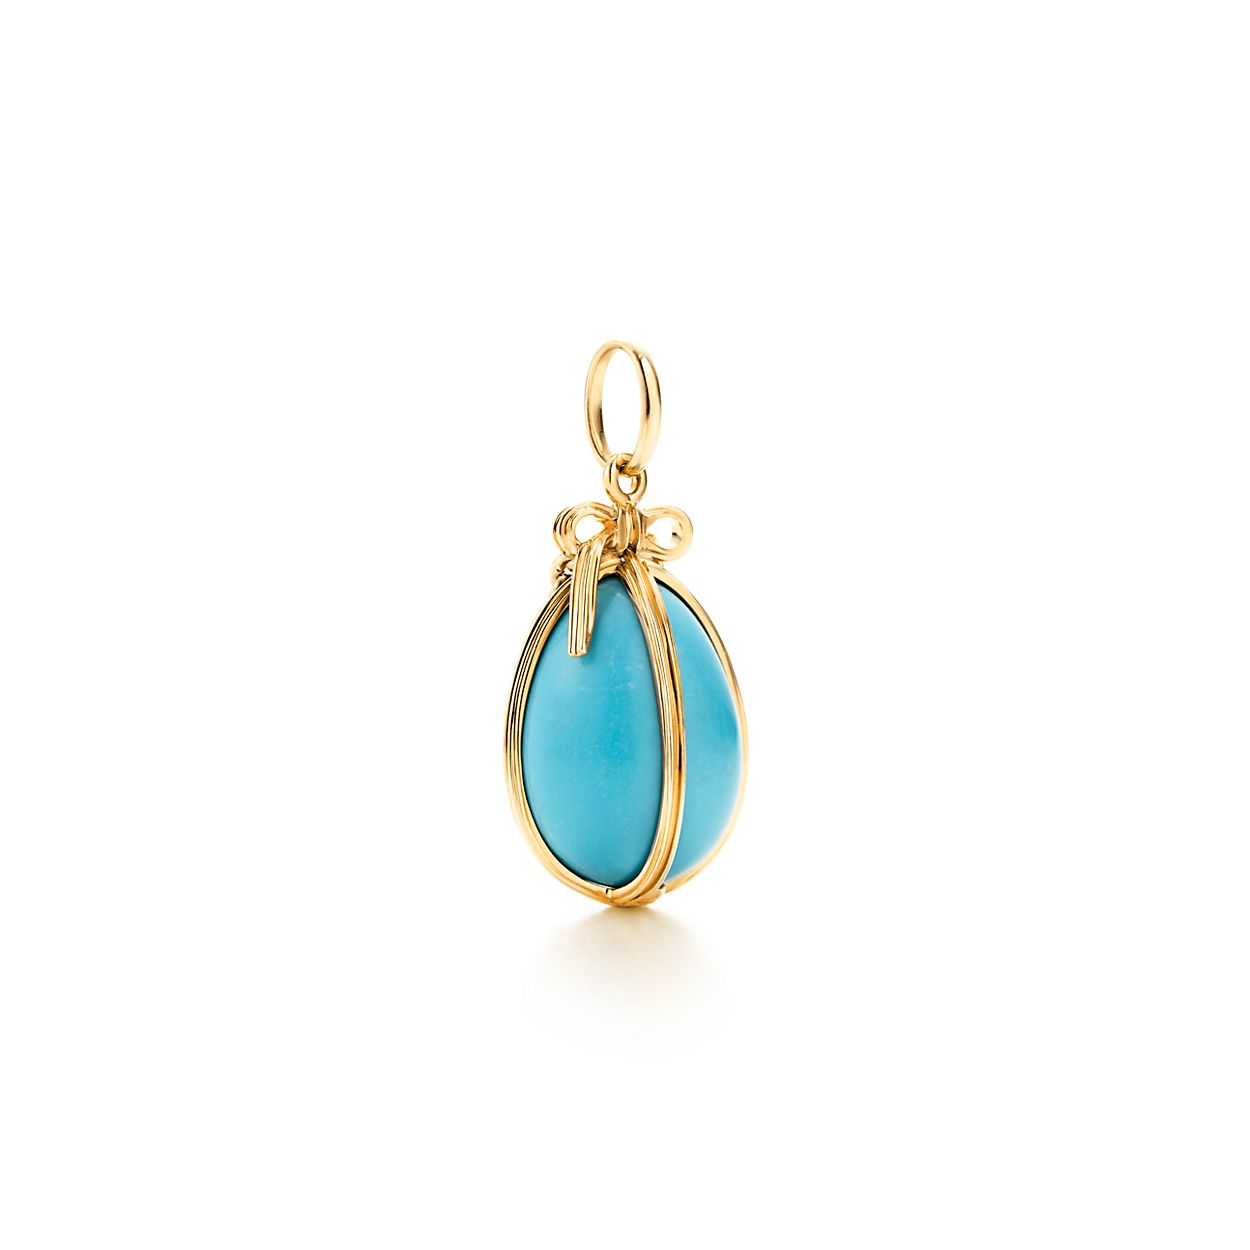 Tiffany & Co Schlumberger Egg charm of turquoise with 18k gold, small Tiffany & Co.